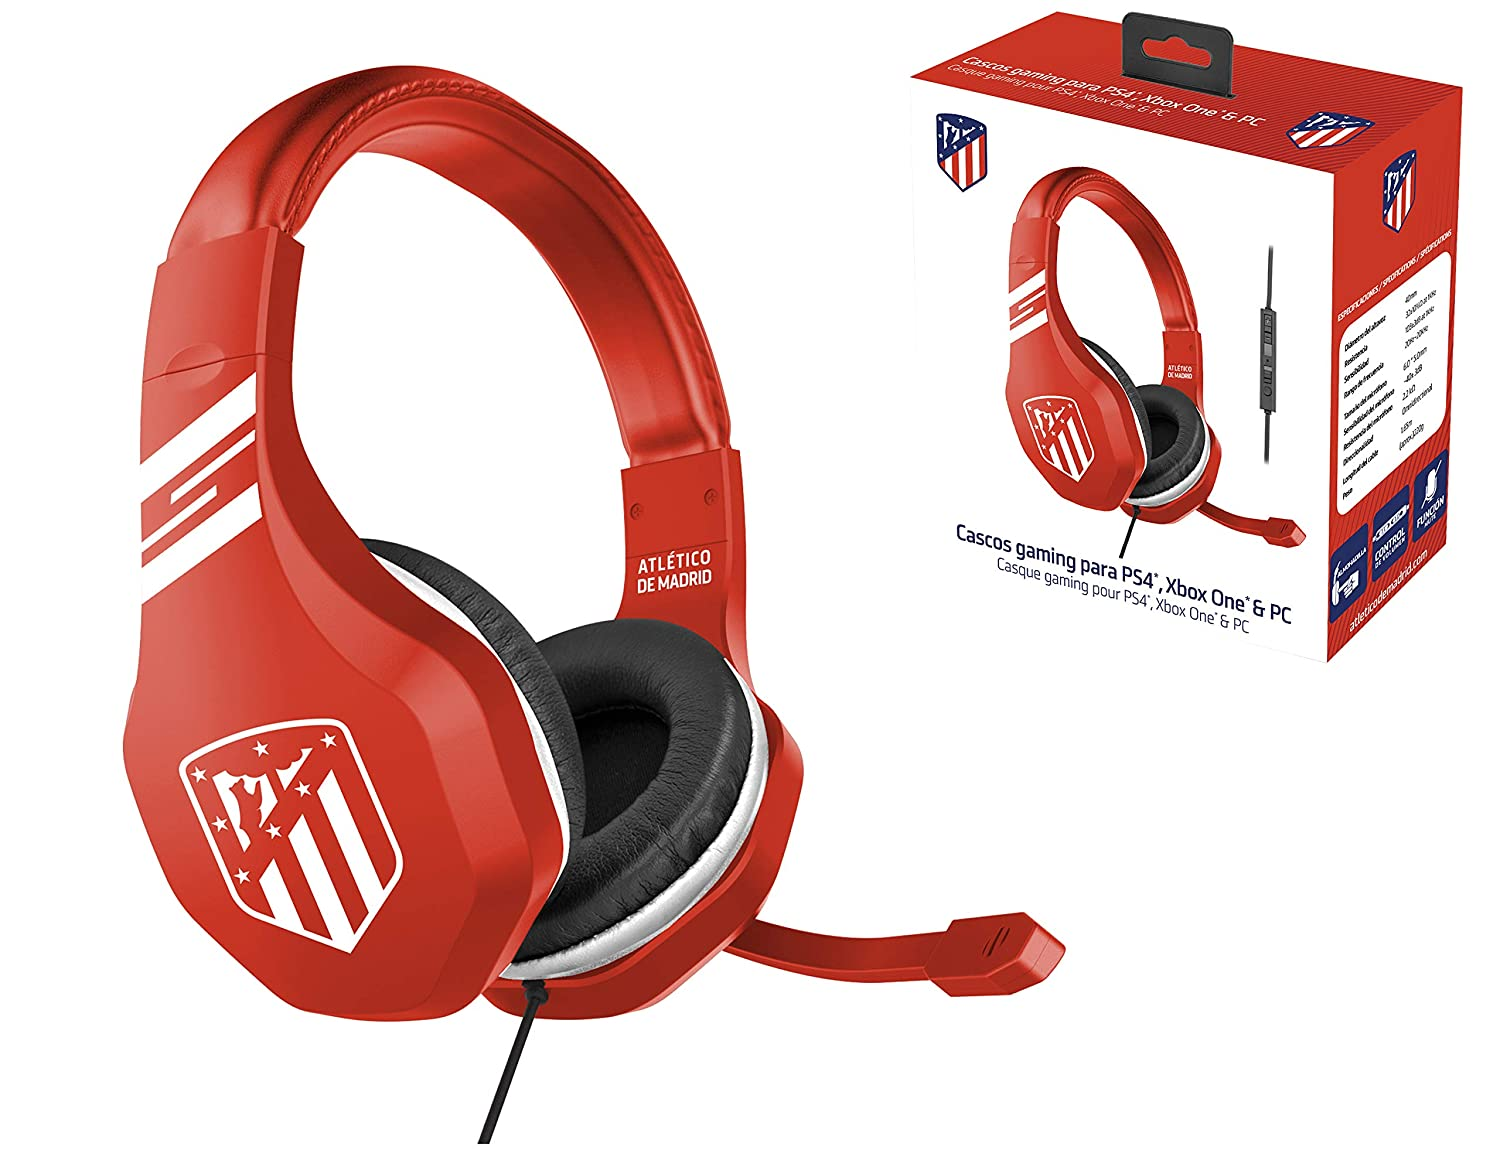 ATM Atletico de Madrid Auriculares gaming - accesorio PS4, PS4 Pro, Xbox One, PC: Amazon.es: Videojuegos